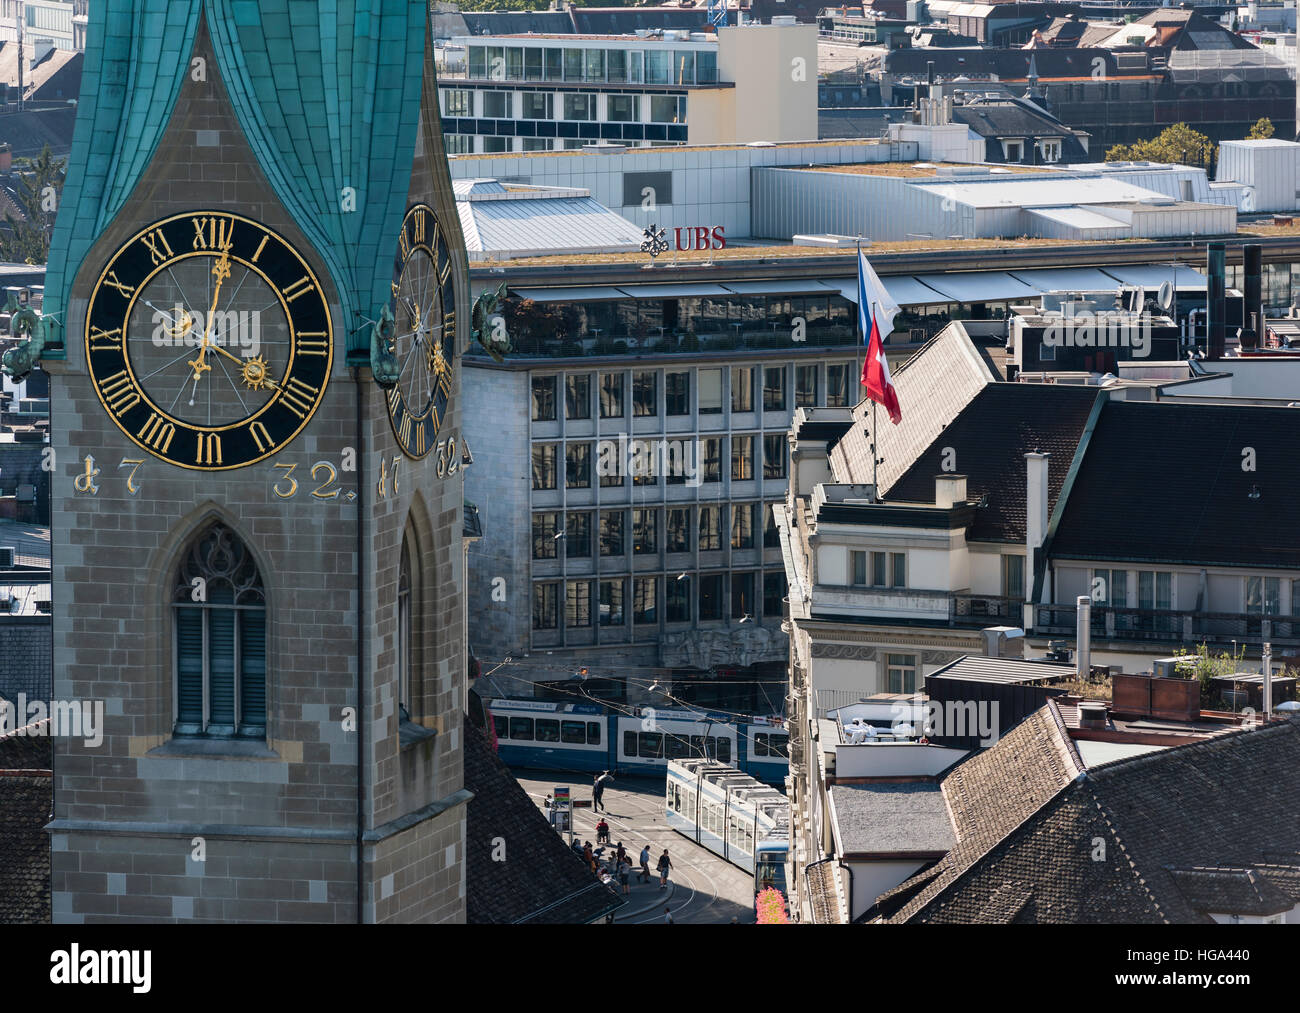 Zurich Paradeplatz with the headquarters of both UBS and Credit Suisse, visible behind the church spire of Fraumunster - Stock Image